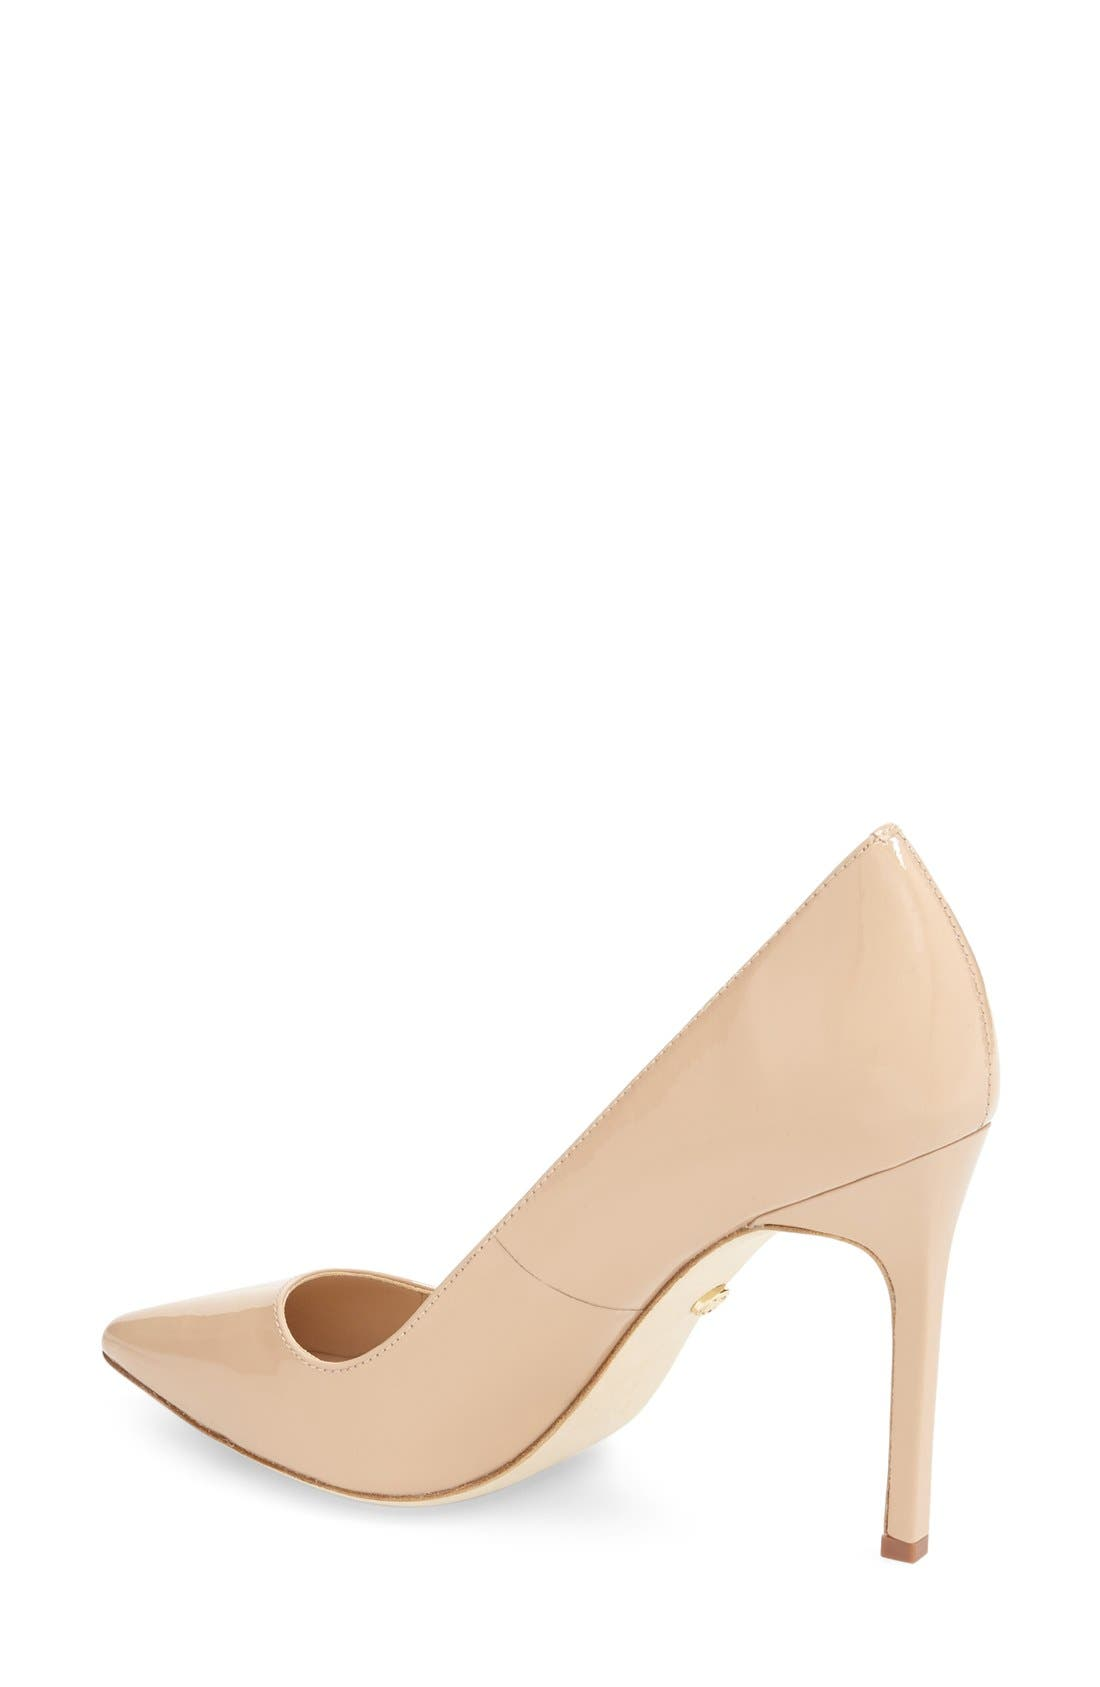 'Caterina' Pointy Toe Pump,                             Alternate thumbnail 35, color,